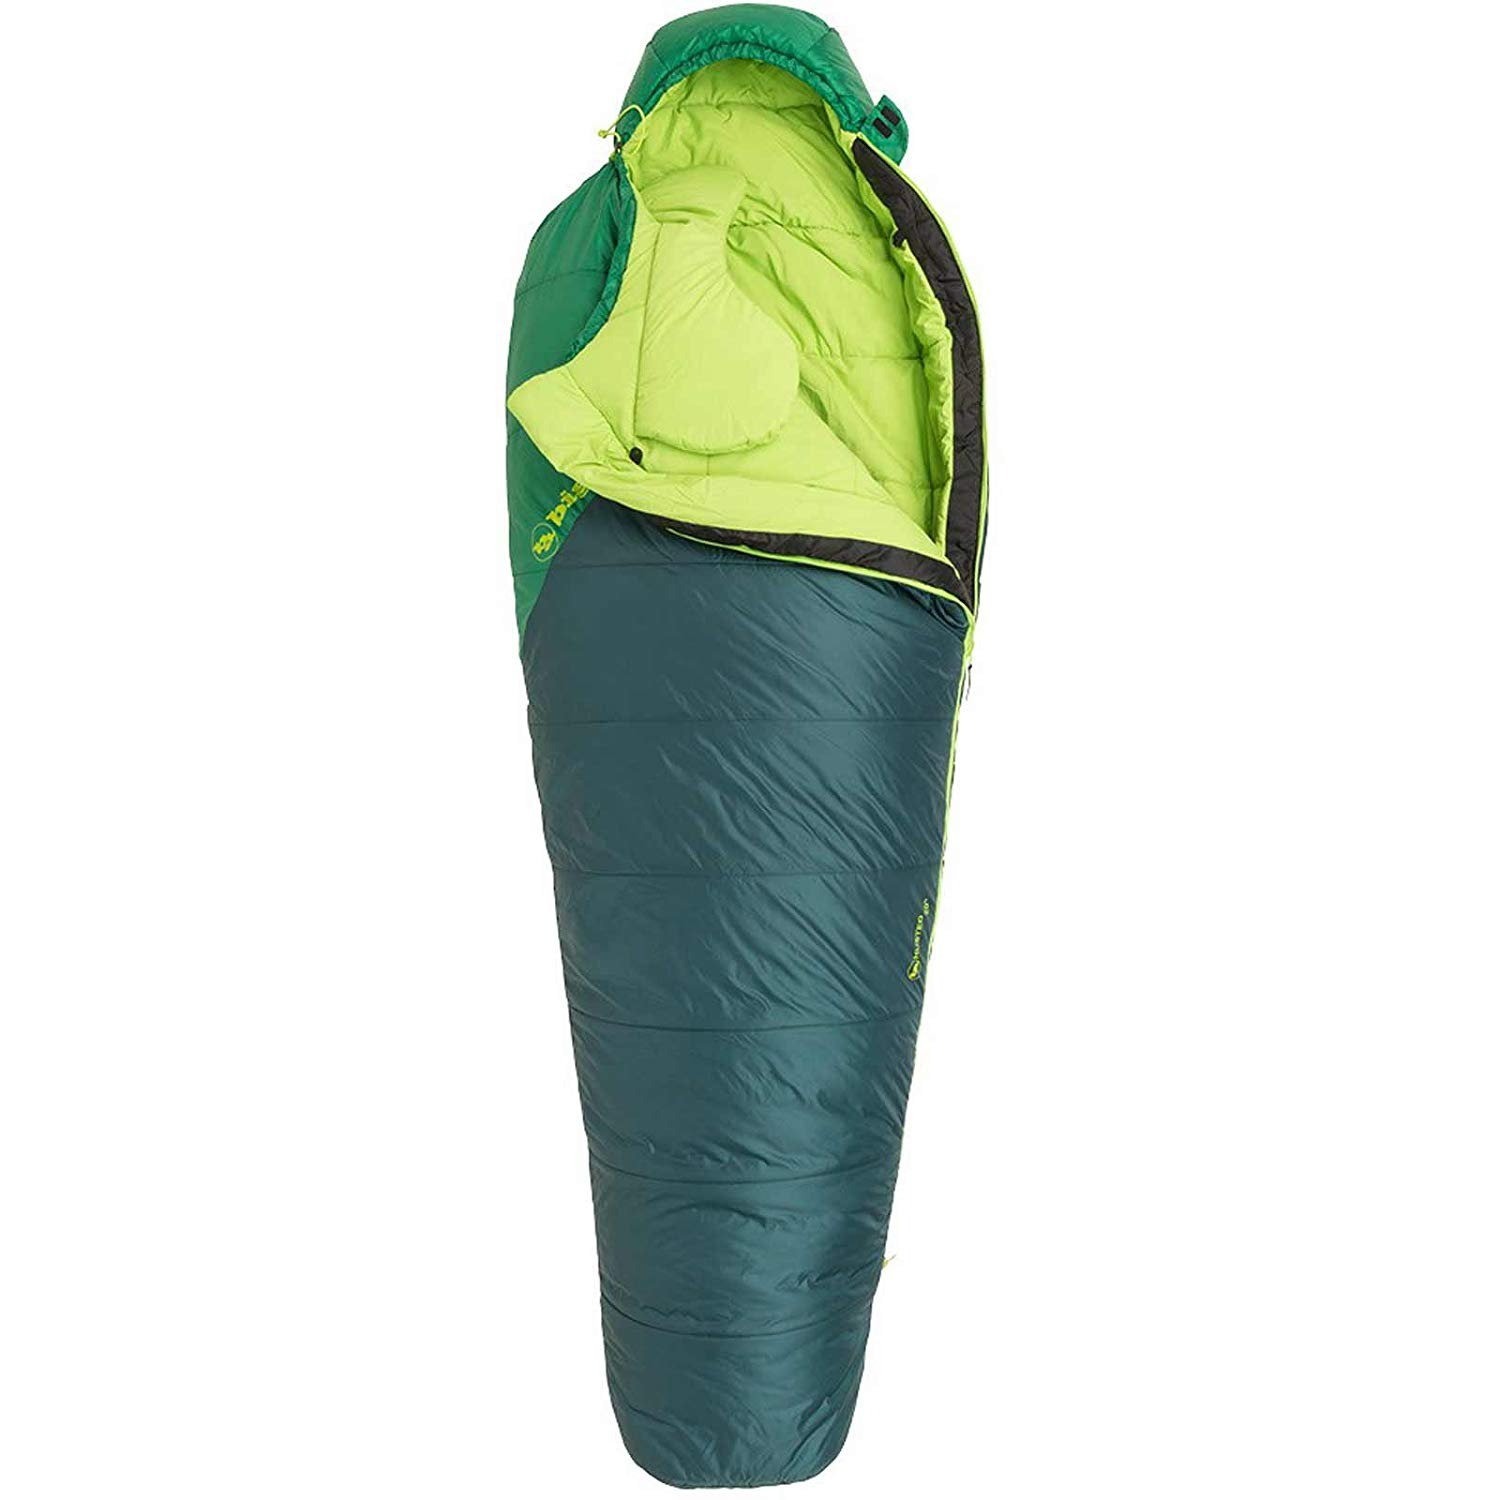 An image of Big Agnes Husted Men's 20 Degree Single Lightweight Polyester Mummy Sleeping Bag